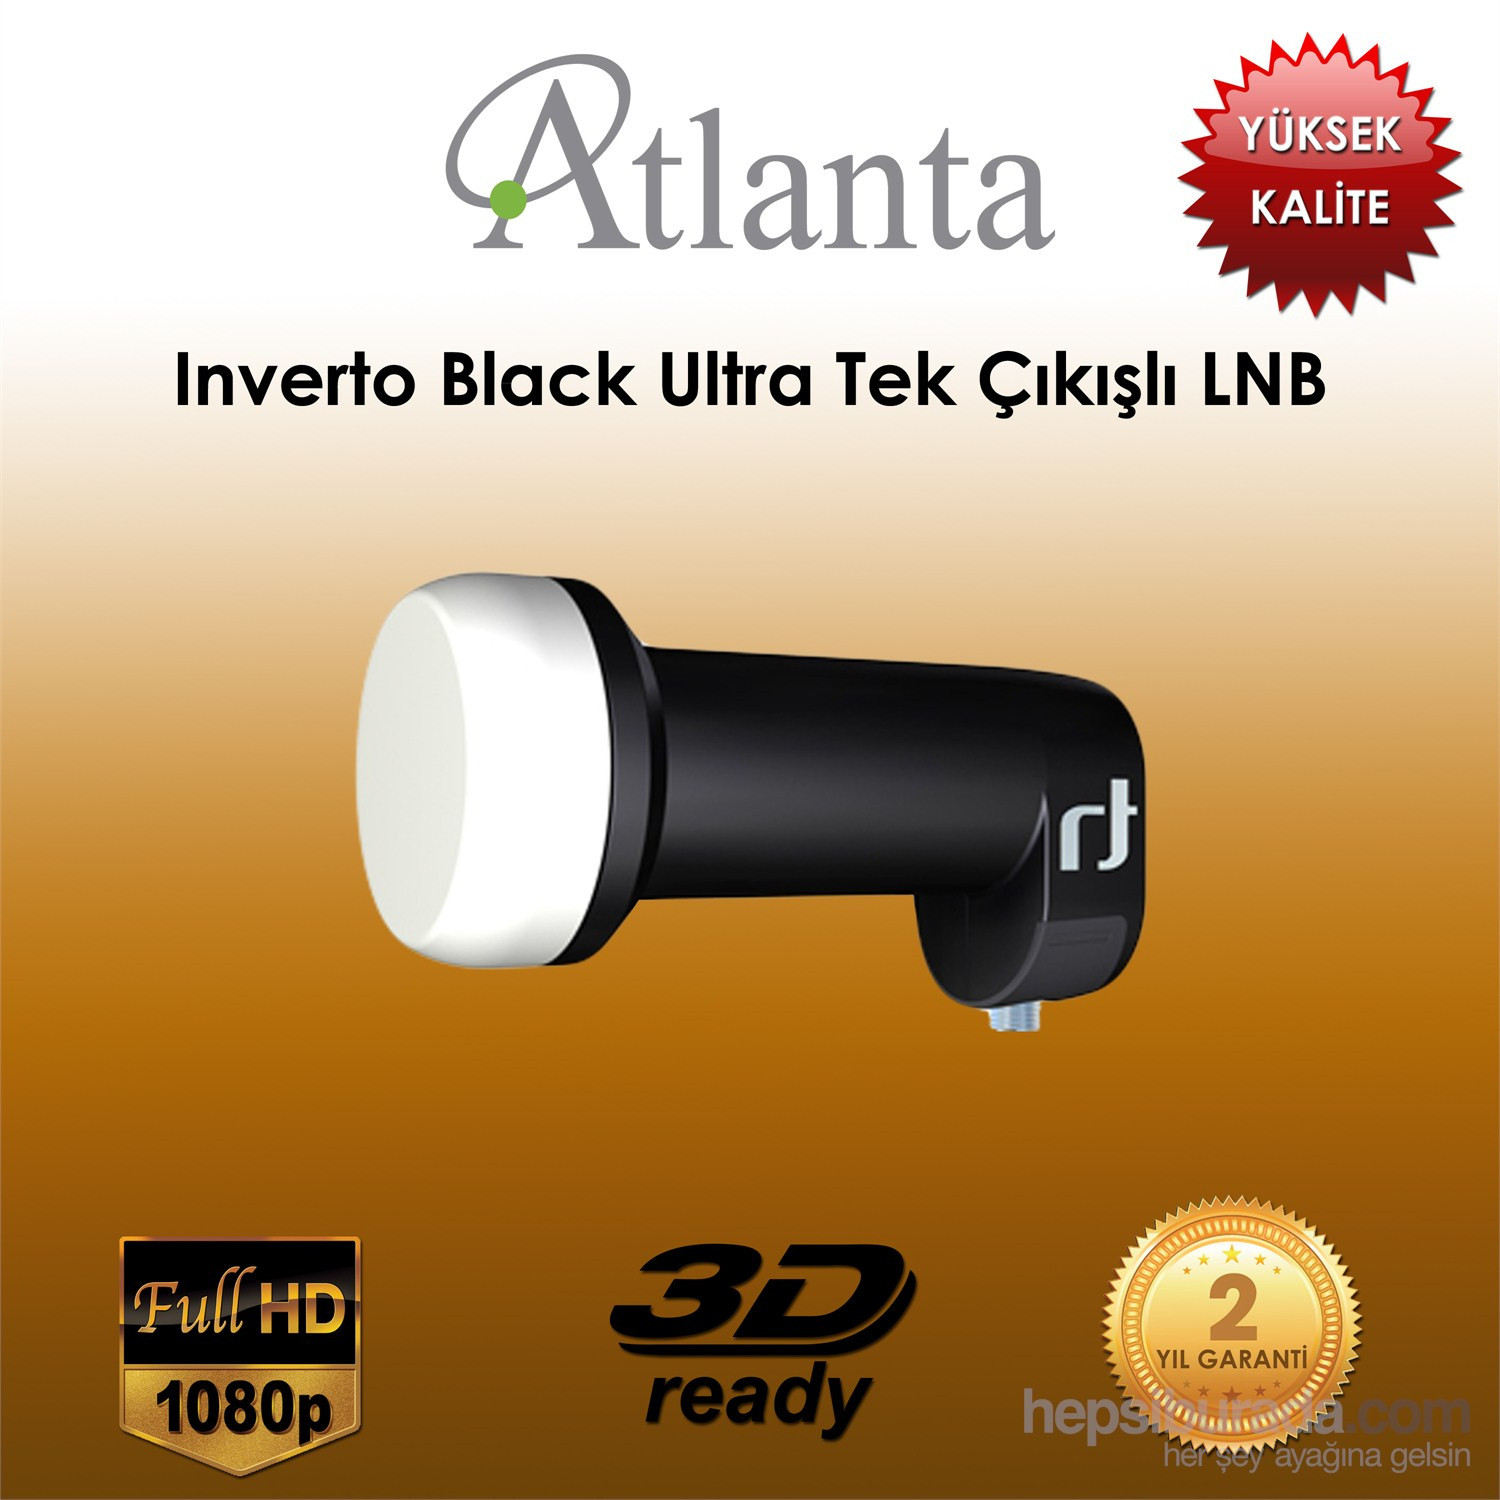 Atlanta Inverto Black Ultra Single LNB